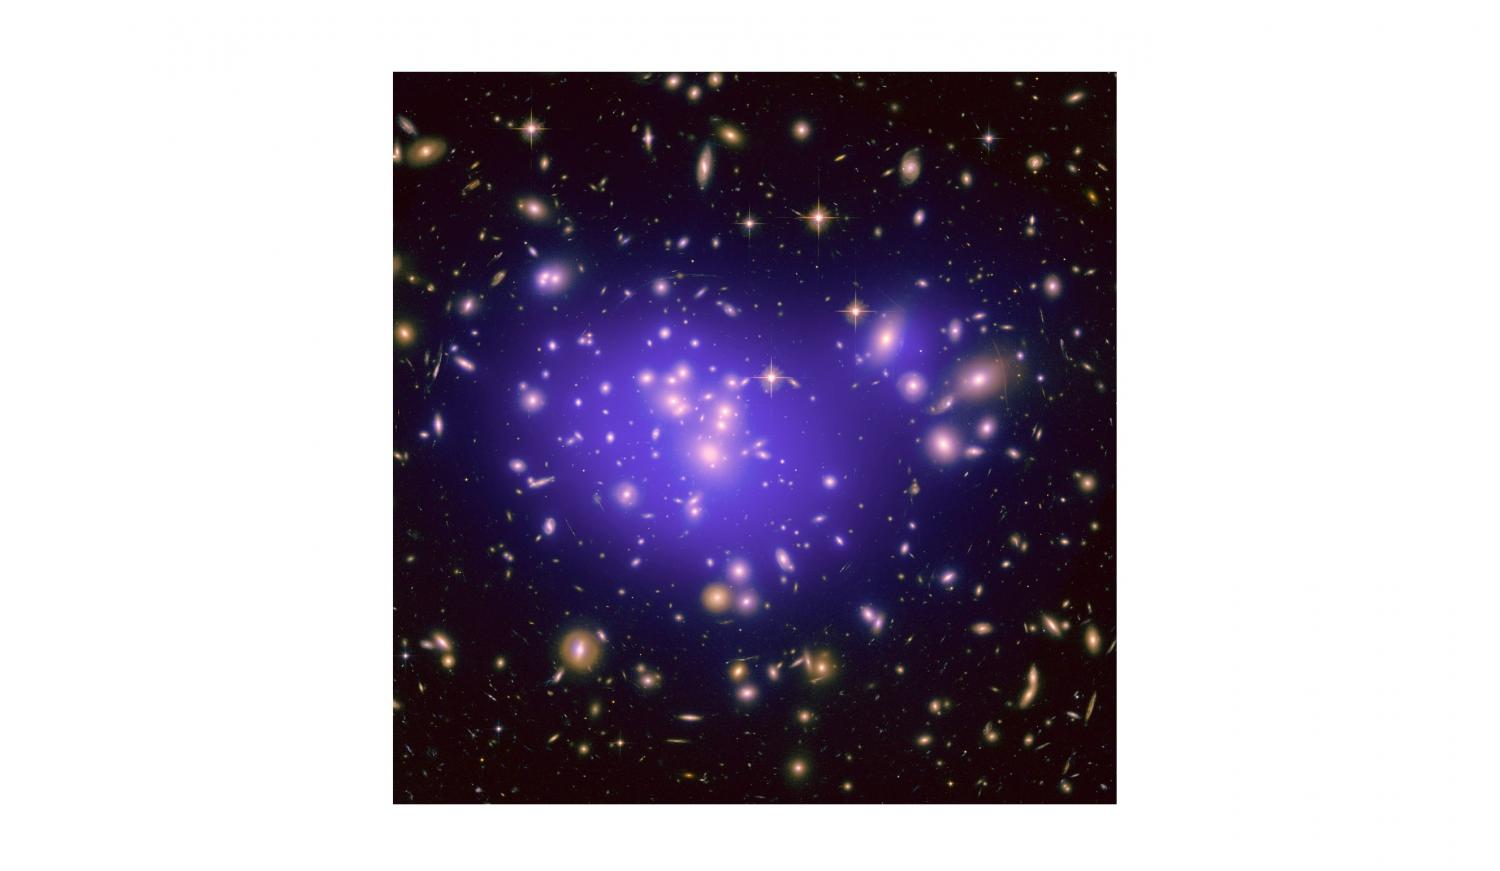 This image shows the galaxy cluster Abell 1689, with the mass distribution of the dark matter in the gravitational lens overlaid (in purple). The mass in this lens is made up partly of normal (baryonic) matter and partly of dark matter. Credit: NASA, ESA, E. Jullo (JPL/LAM), P. Natarajan (Yale) and J-P. Kneib (LAM). Read more at: http://phys.org/news/2016-11-dark-hidden-sector.html#jCp